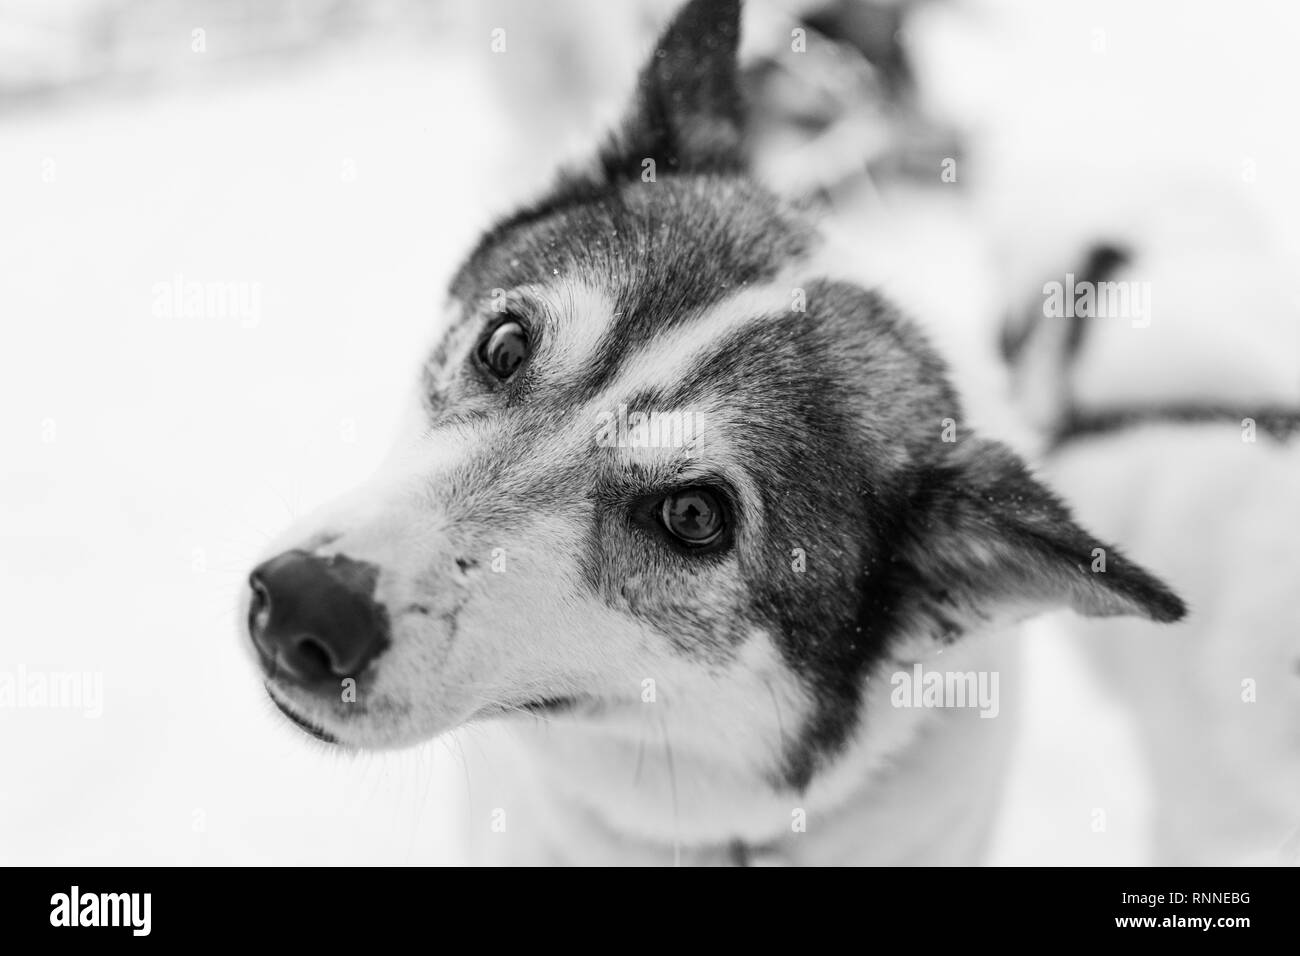 Black and white portrait of a husky - Stock Image